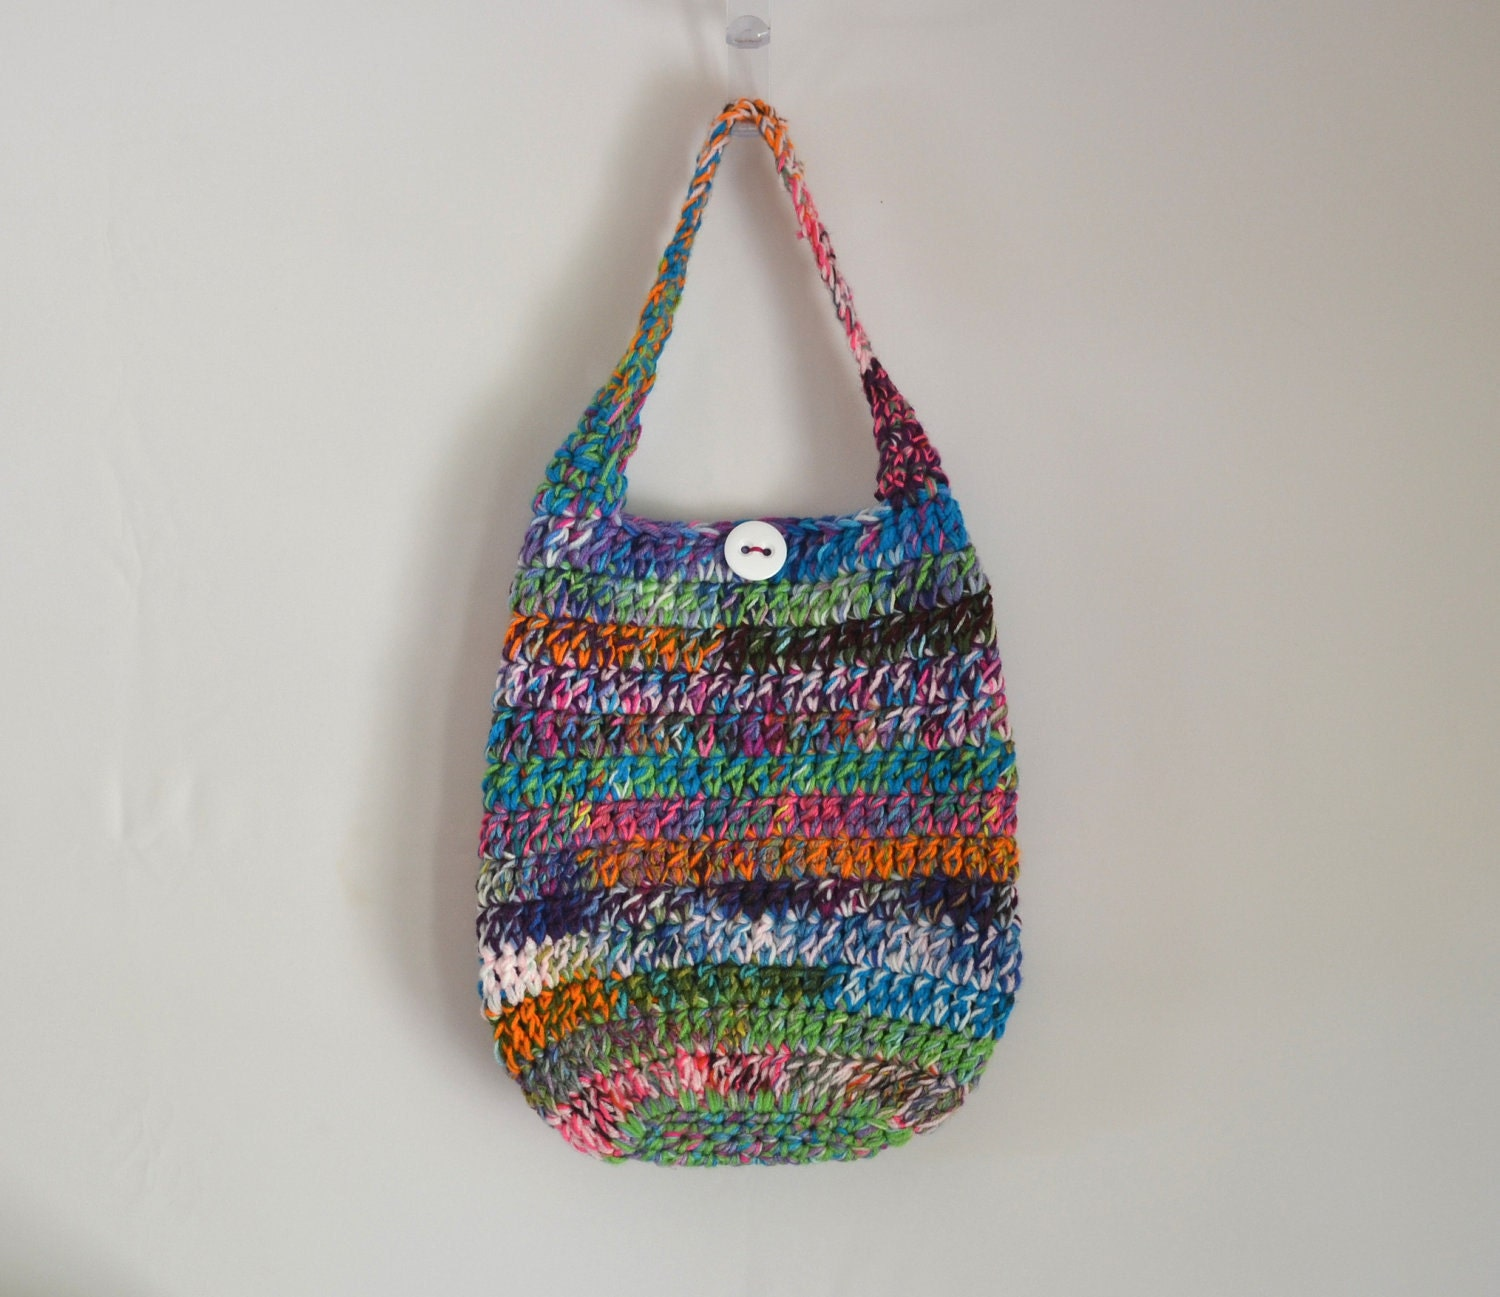 Crochet Hippie Bag : Crazy Crochet Shoulder Bag, Hippie Purse, Boho Bag, Multicolored ...